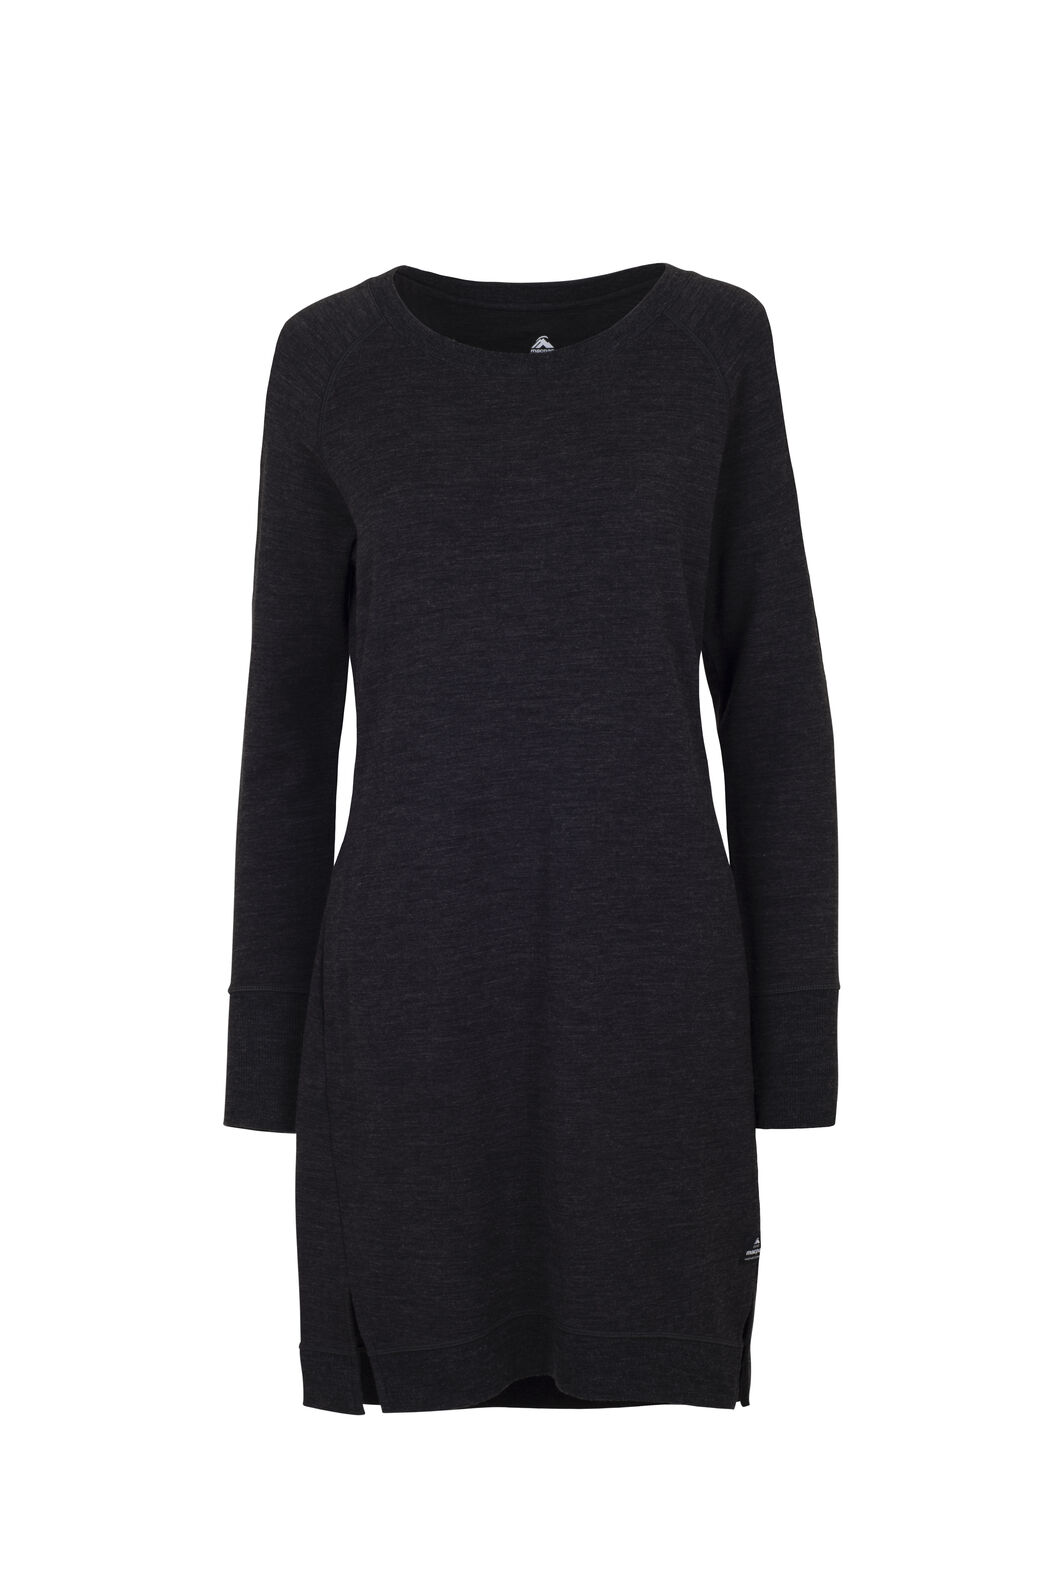 Macpac Platform Merino Dress — Women's, Charcoal Marle, hi-res